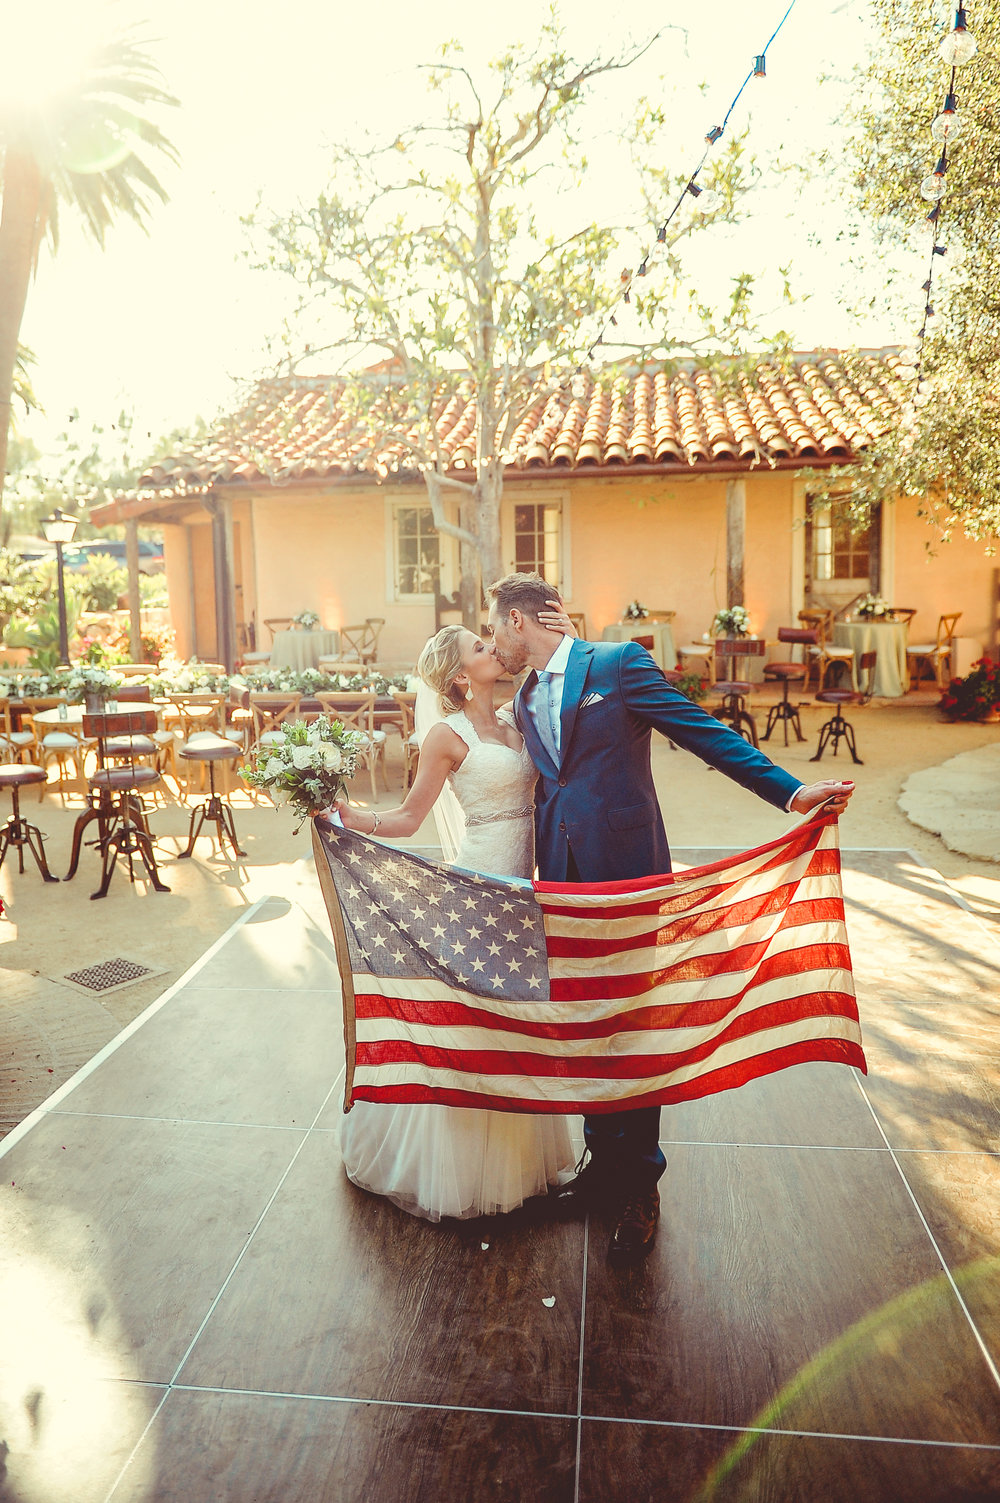 www.santabarbarawedding.com | JKoe Photography | La Fete Weddings | Santa Barbara Historical Museum | Bride and Groom